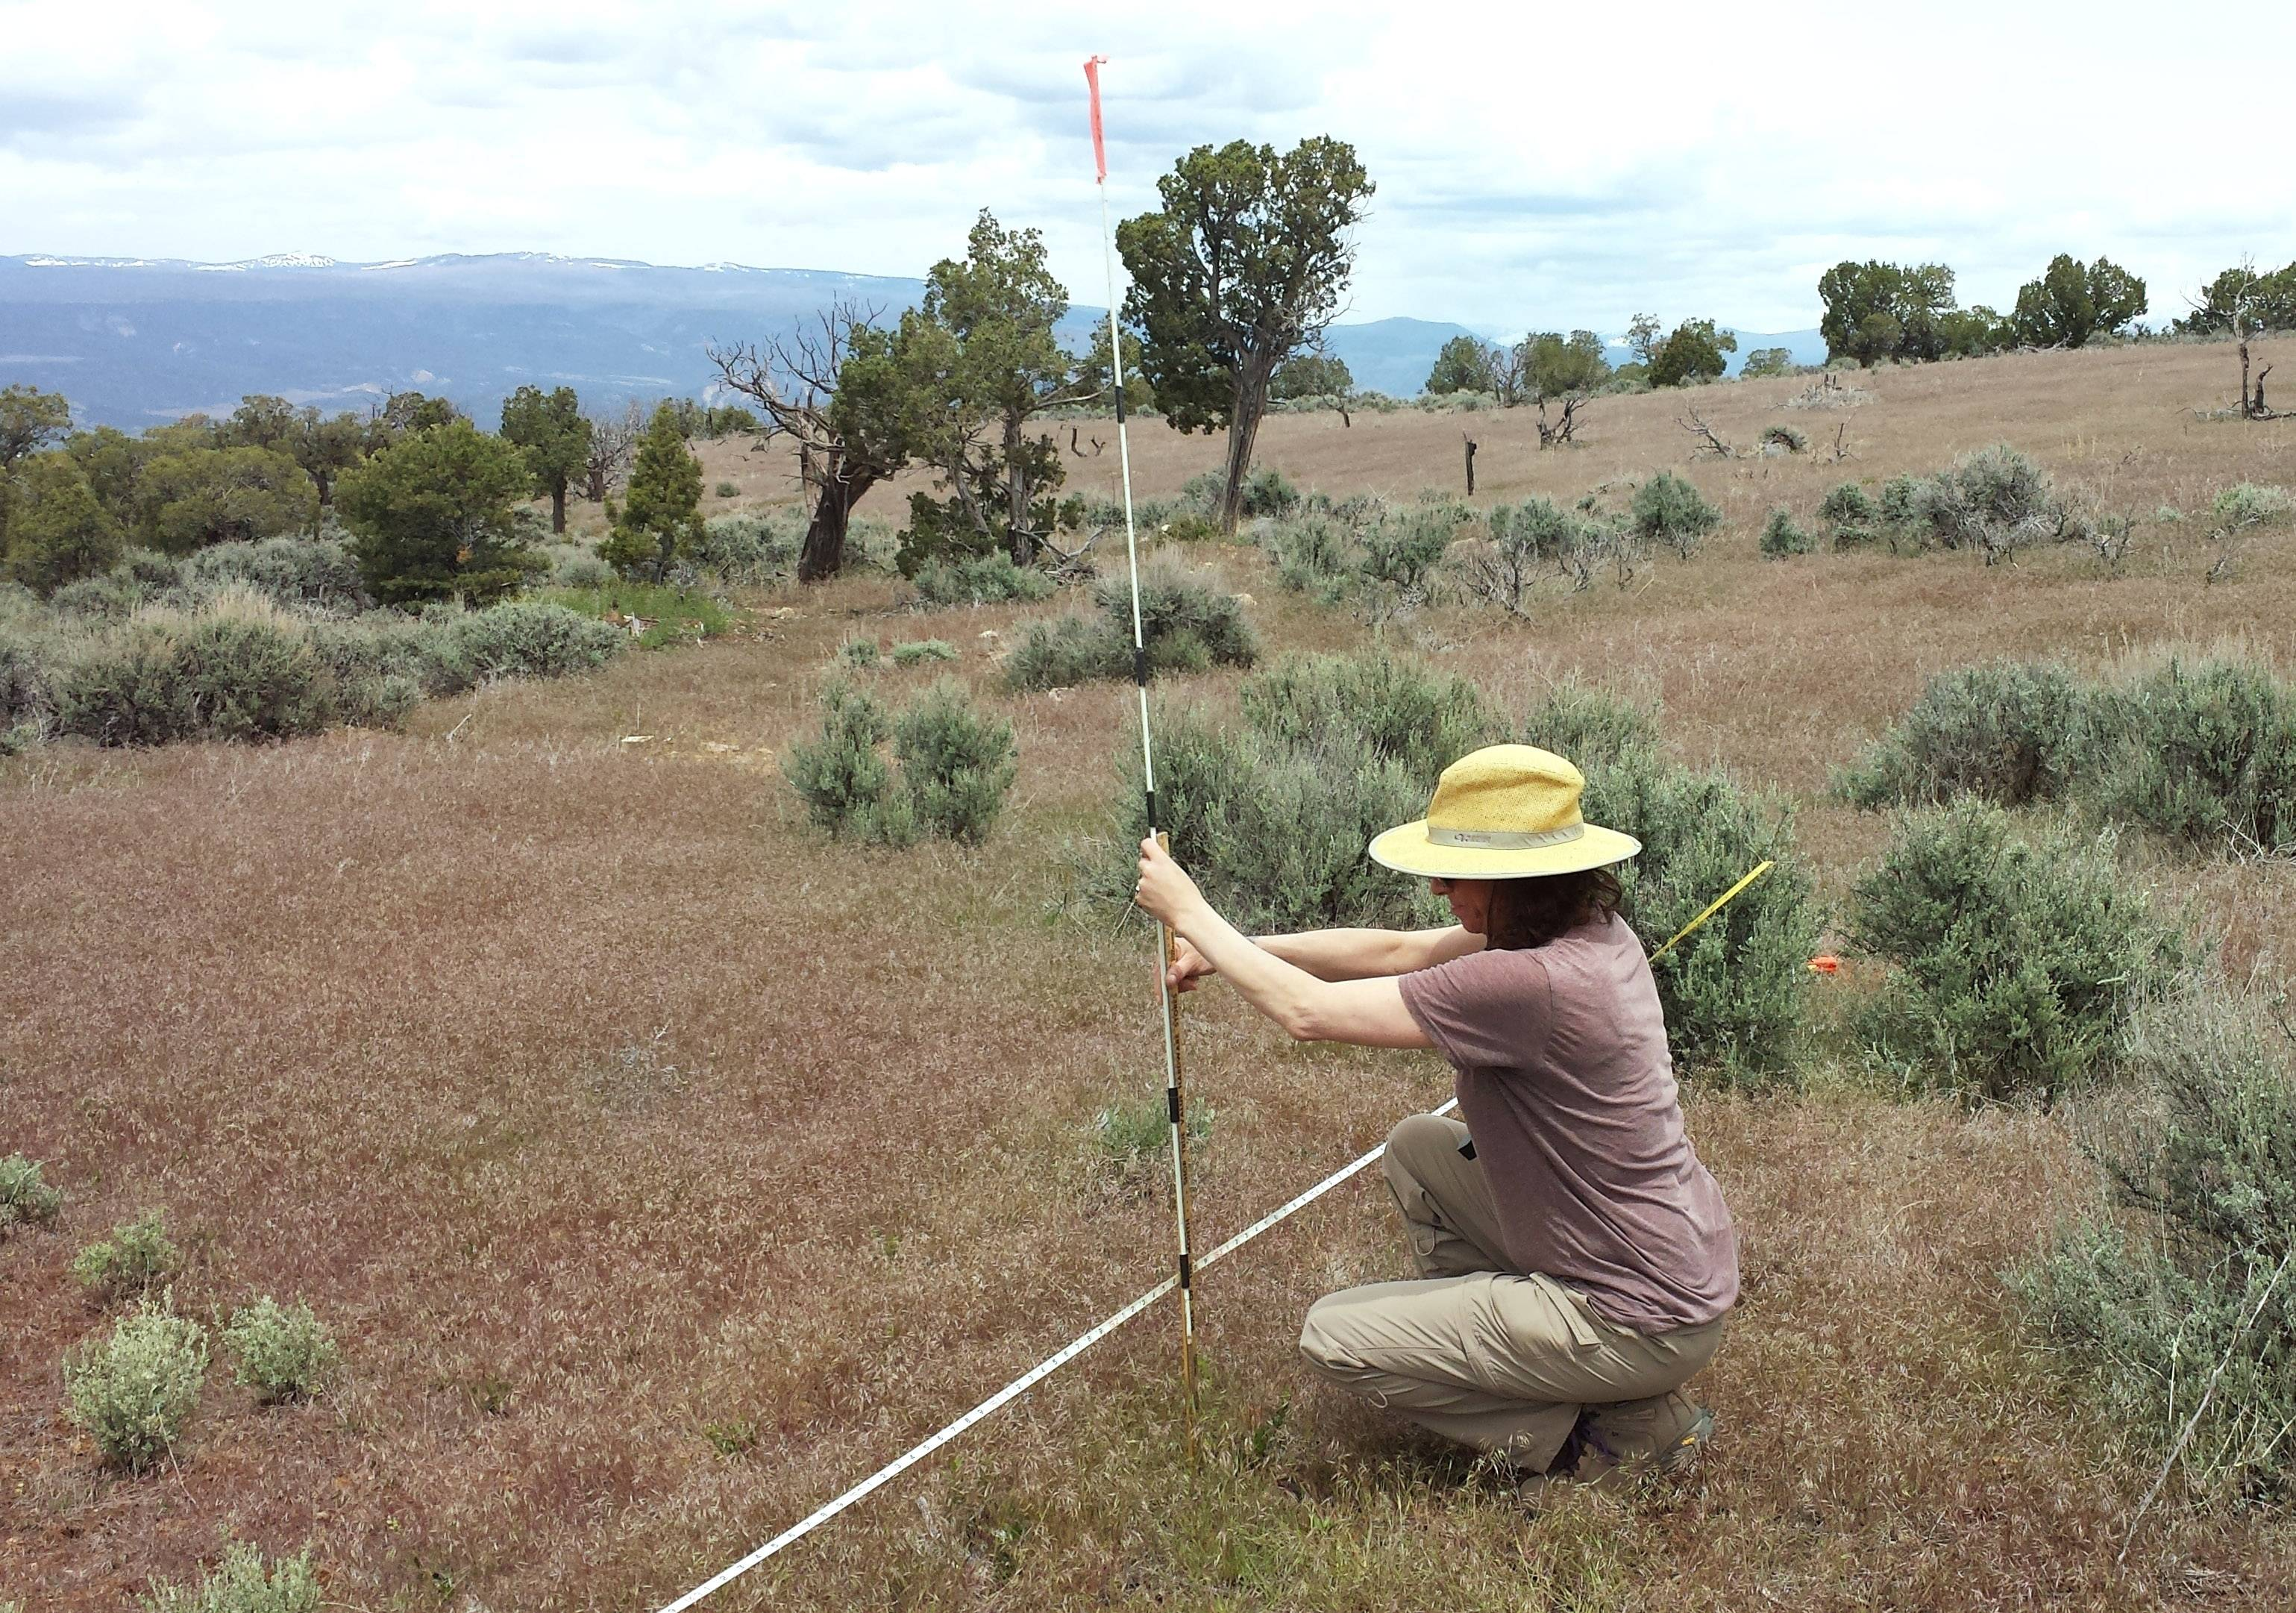 Elizabeth Kaufman of Wauconda working with the Bureau of Land Management in Montrose, Colorado, in conjunction with the Chicago Botanic Garden's Conservation and Land Management program.